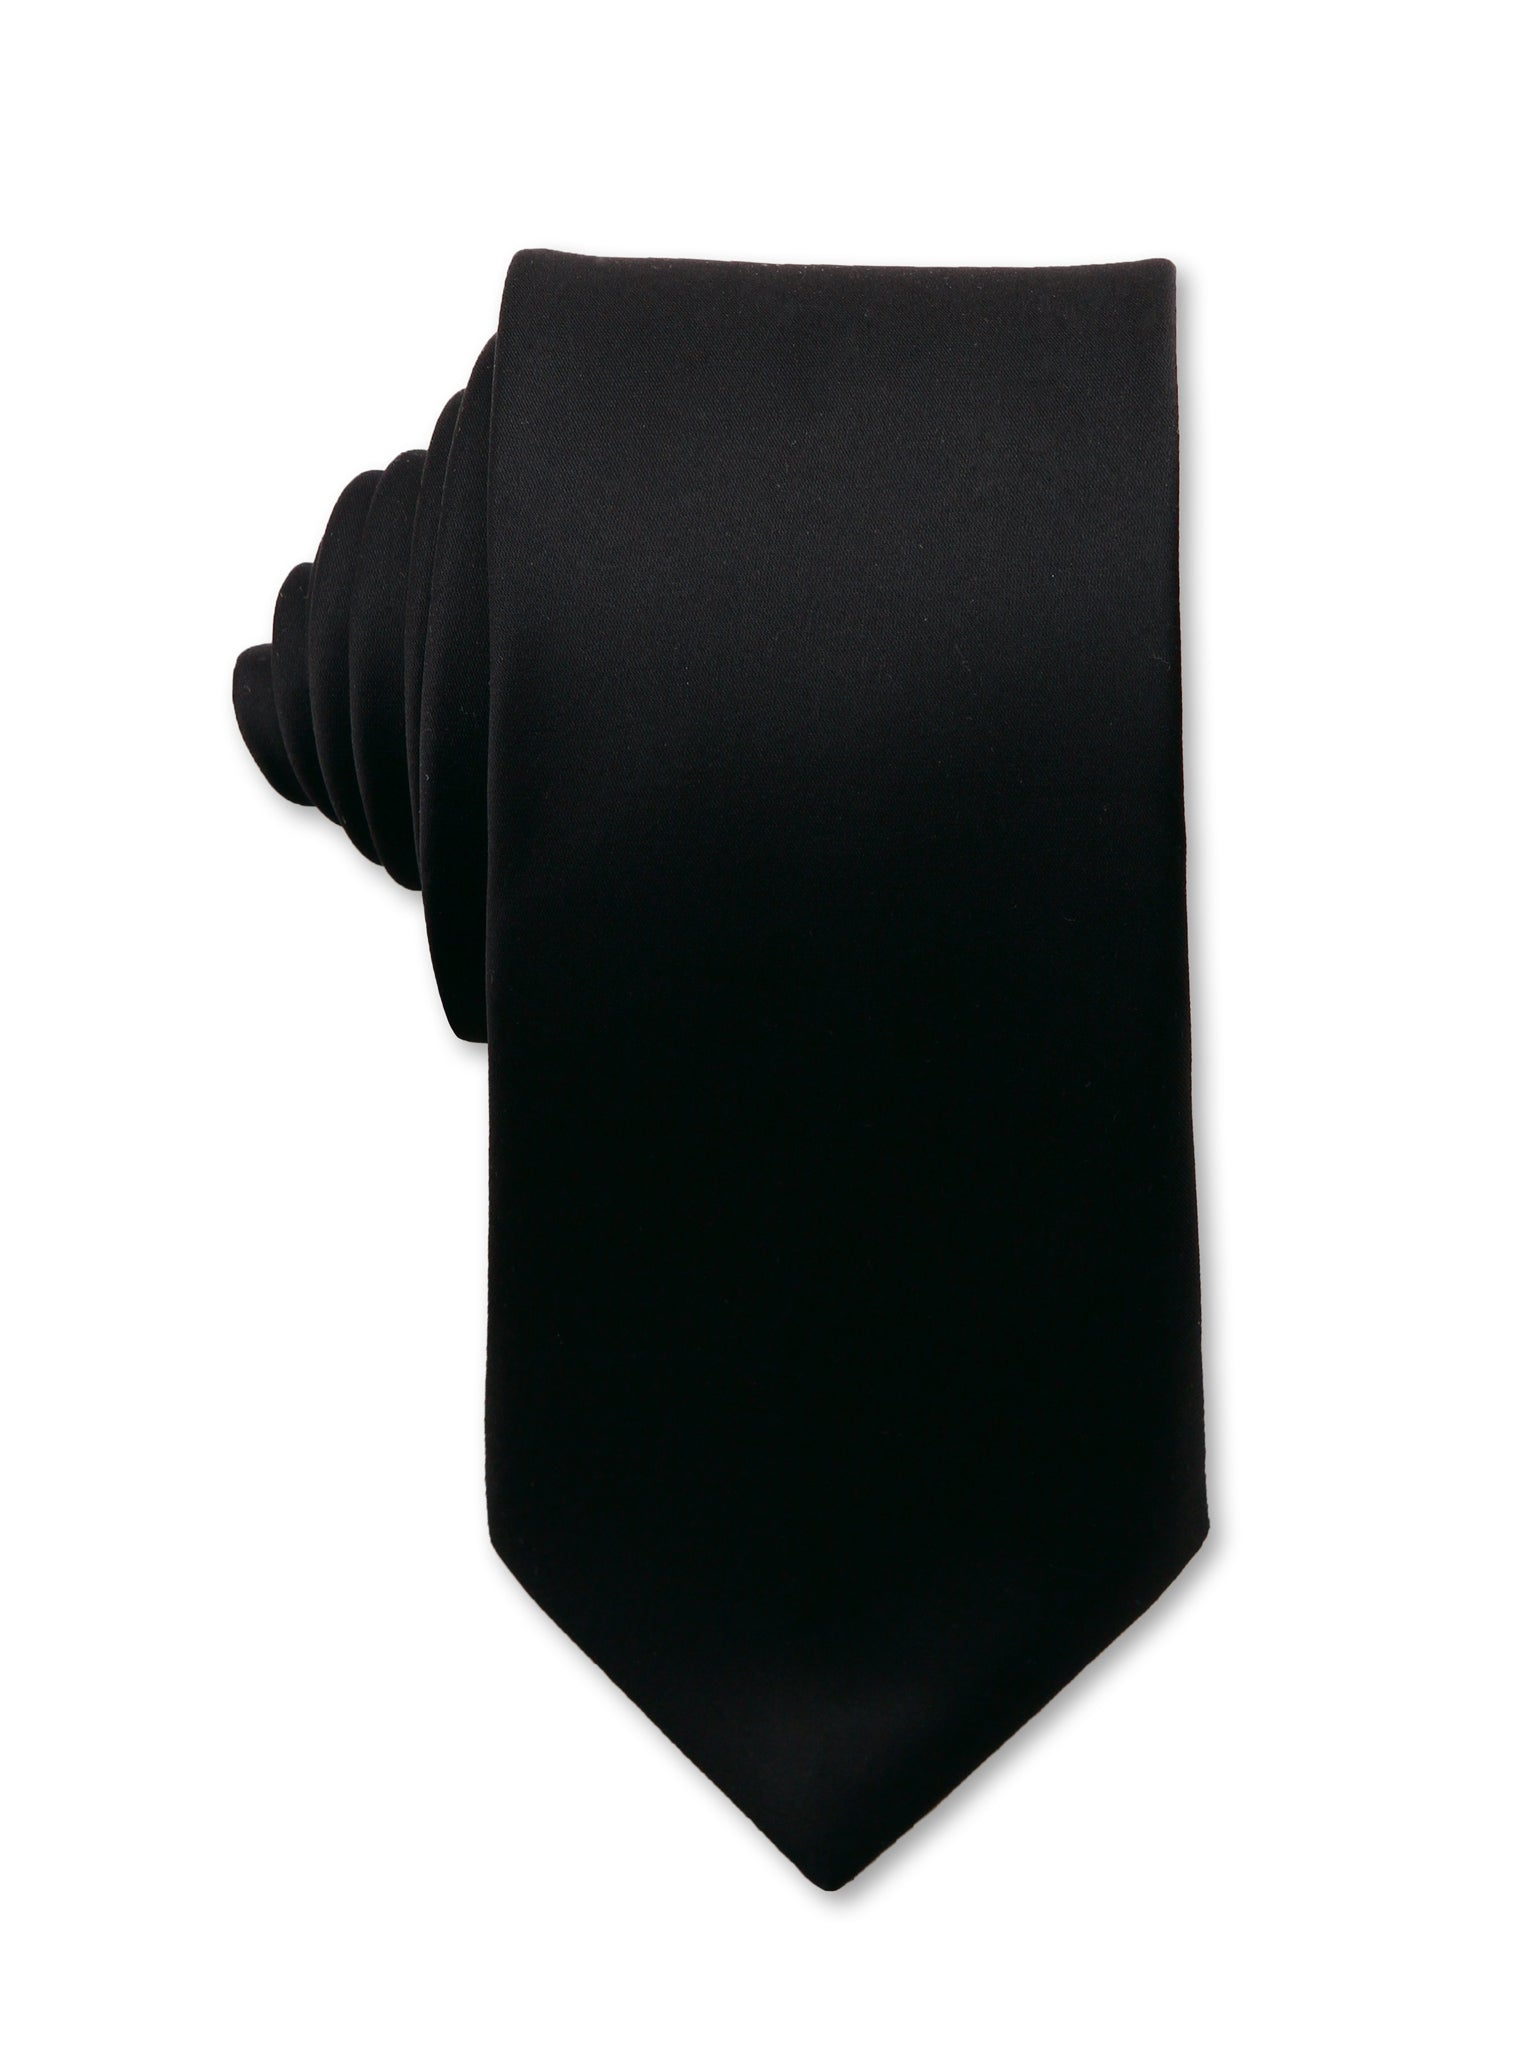 Black Plain 7cm Dwight Luxury Silk Tie Made in Australia